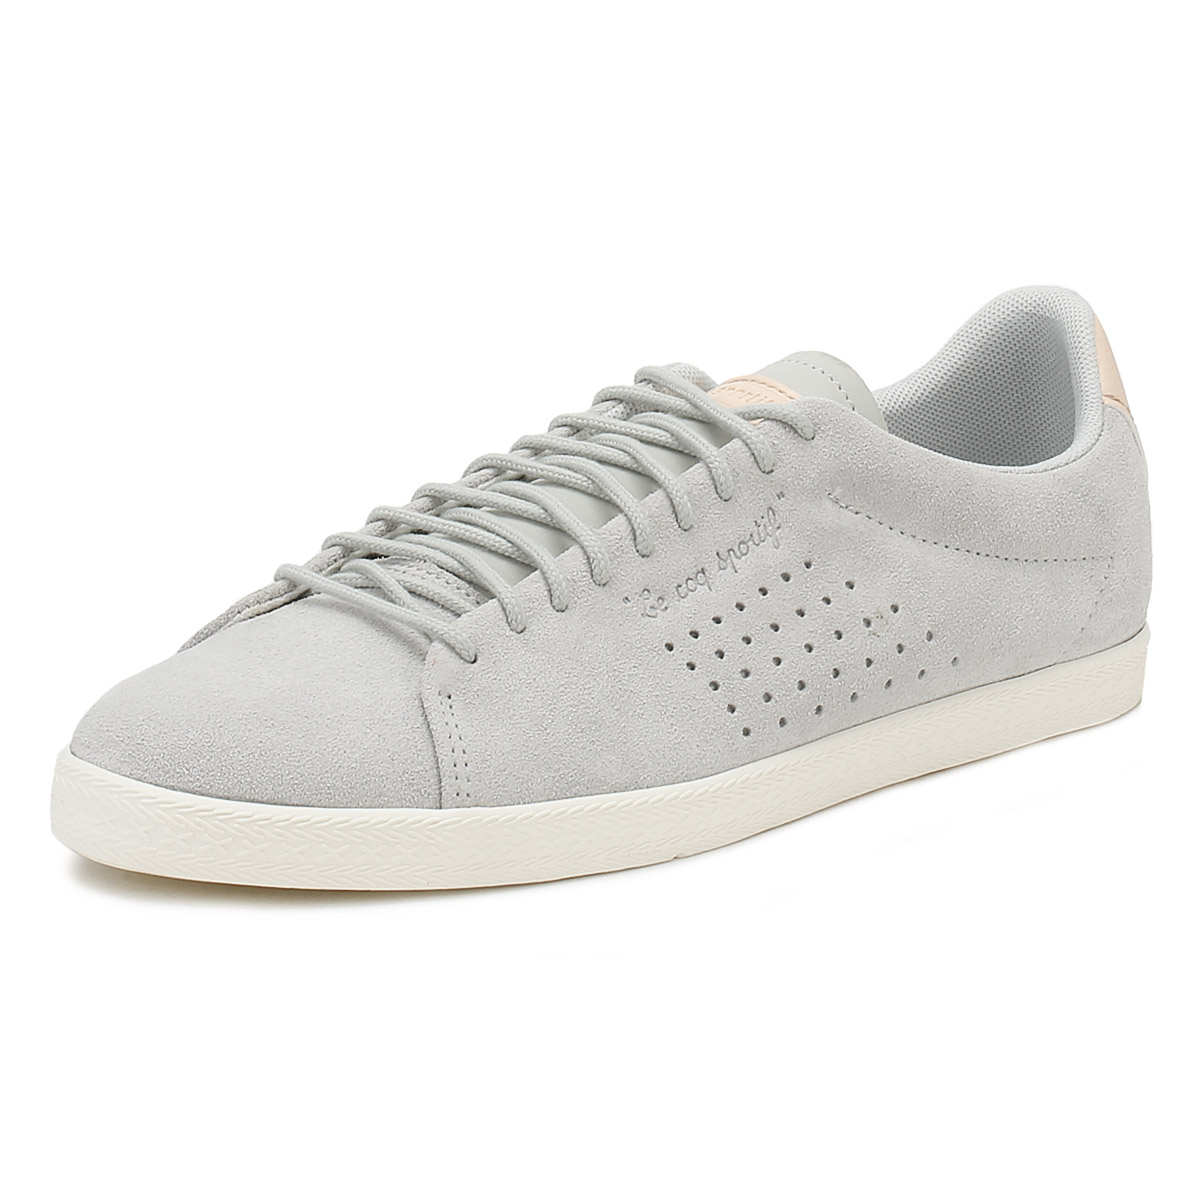 f18681b6e5a6 Details about Le Coq Sportif Womens Trainers Galet Grey Charline Lace Up  Casual Shoes